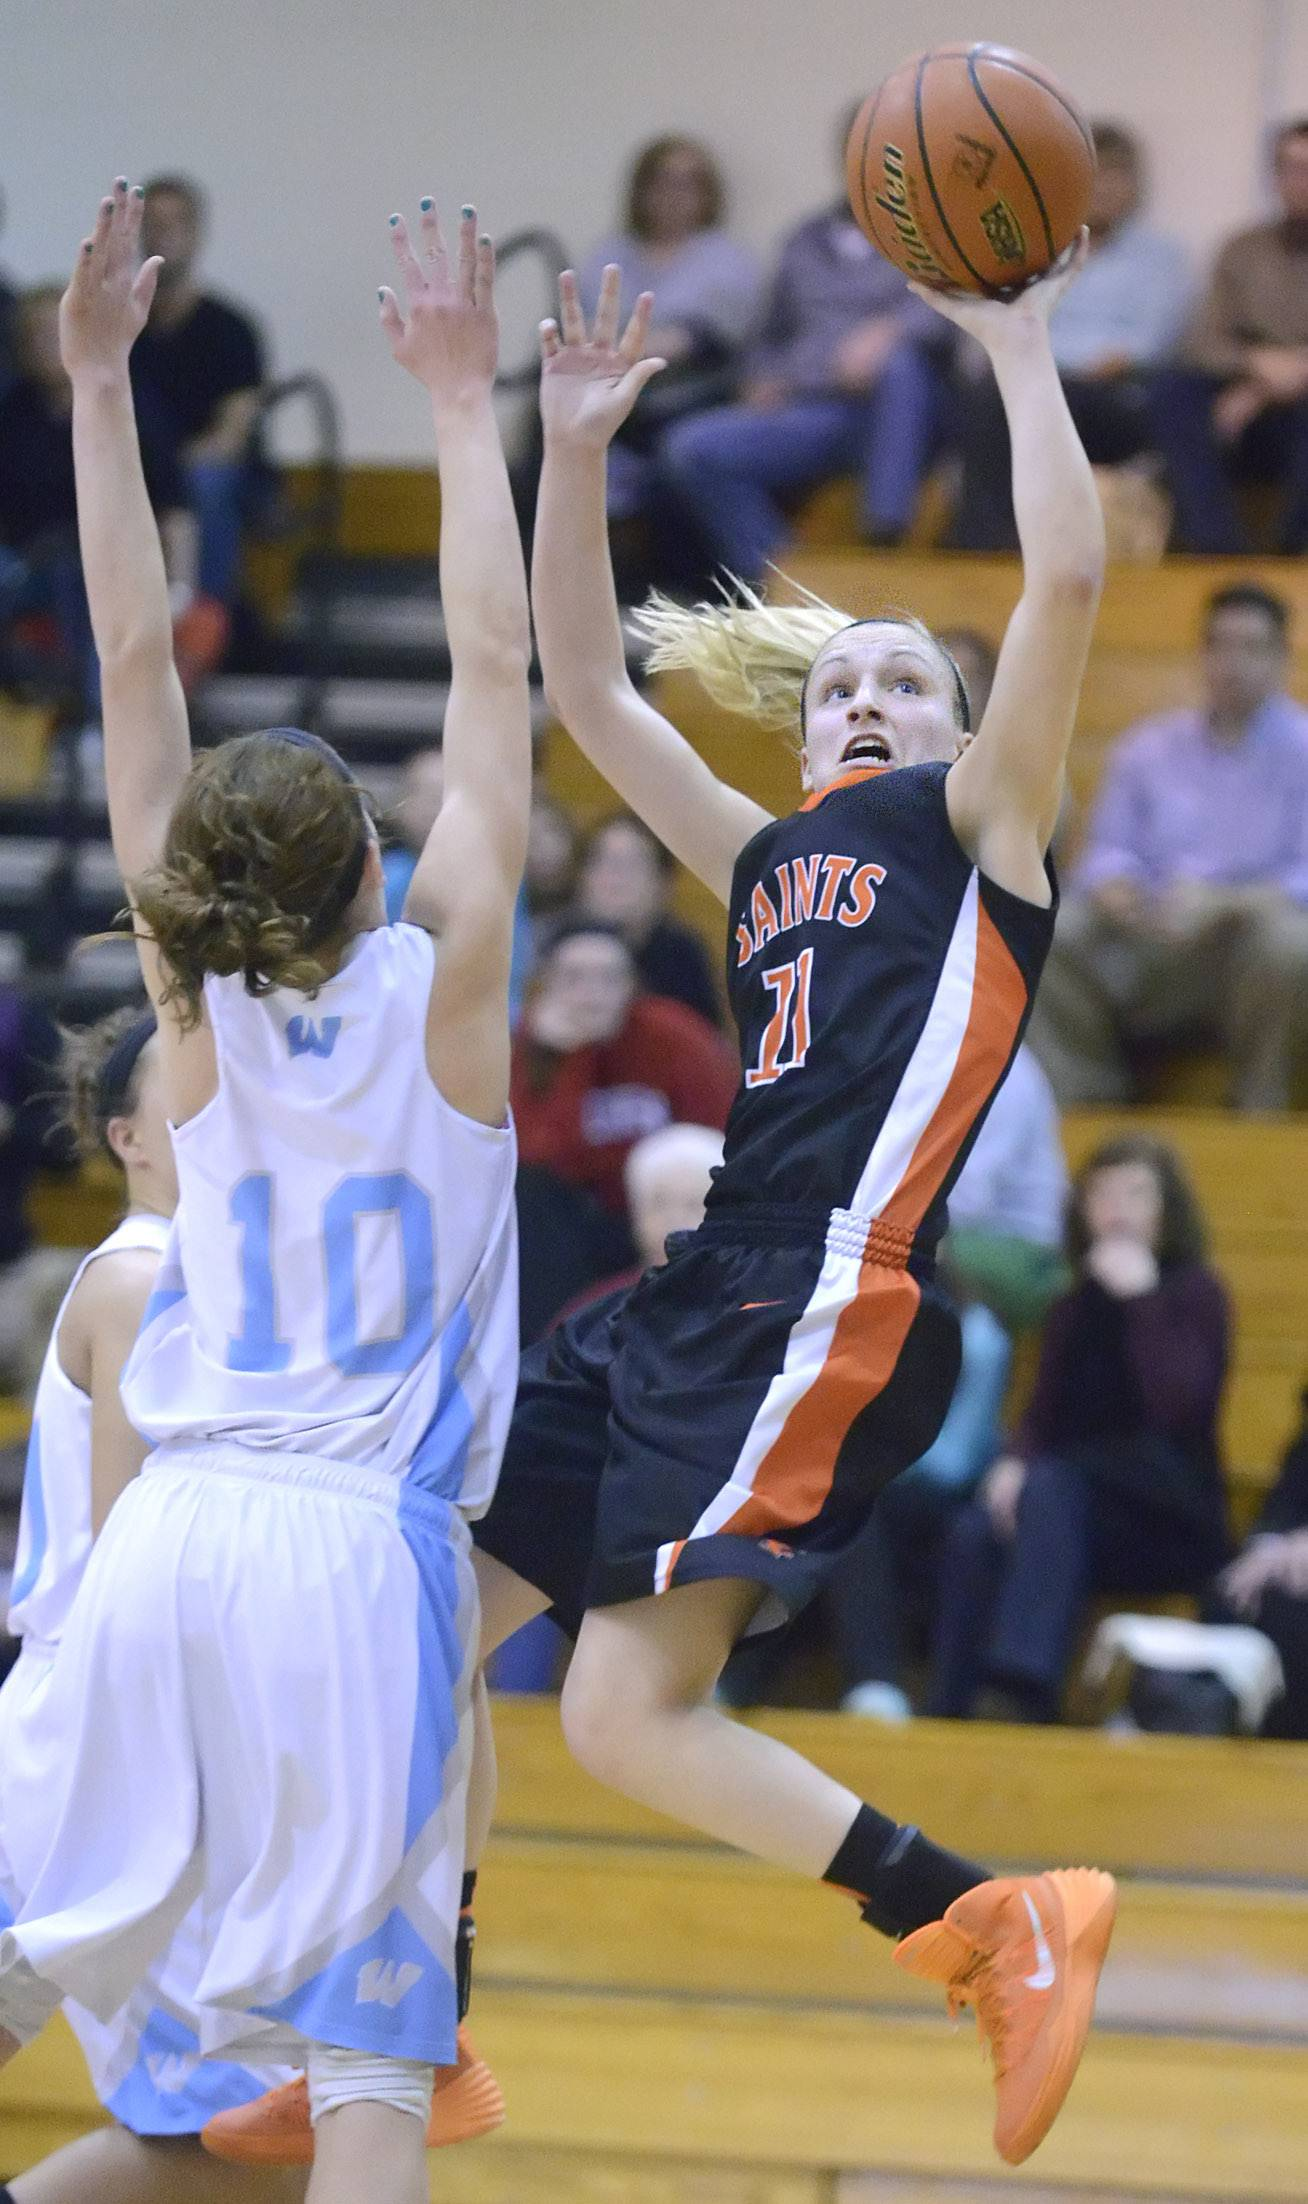 St. Charles East's Katelyn Claussner shoots over a block by Willowbrook's Molly Krawczykowski in the second quarter.